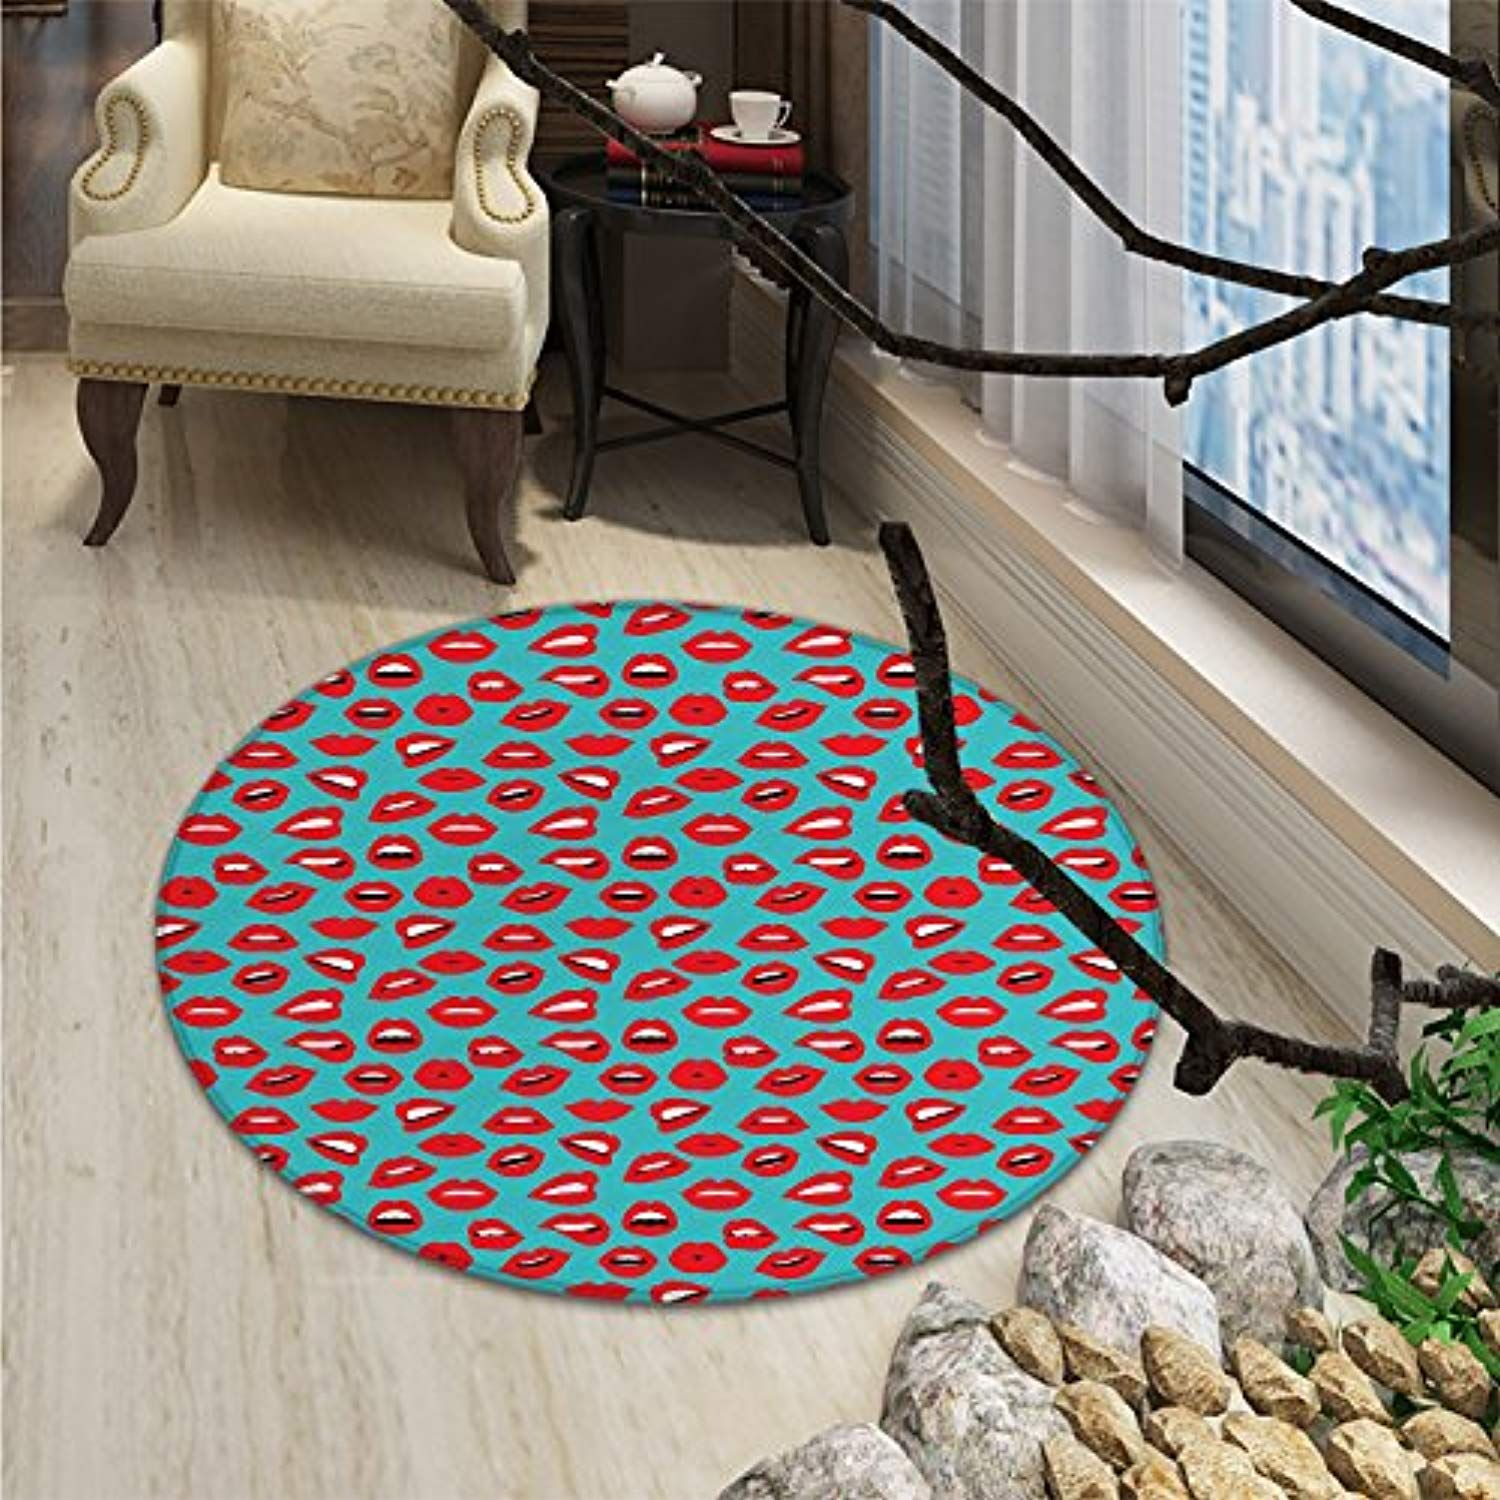 Kiss Round Rugs For Bedroom Retro Woman Mouth Red Lipstick Girl